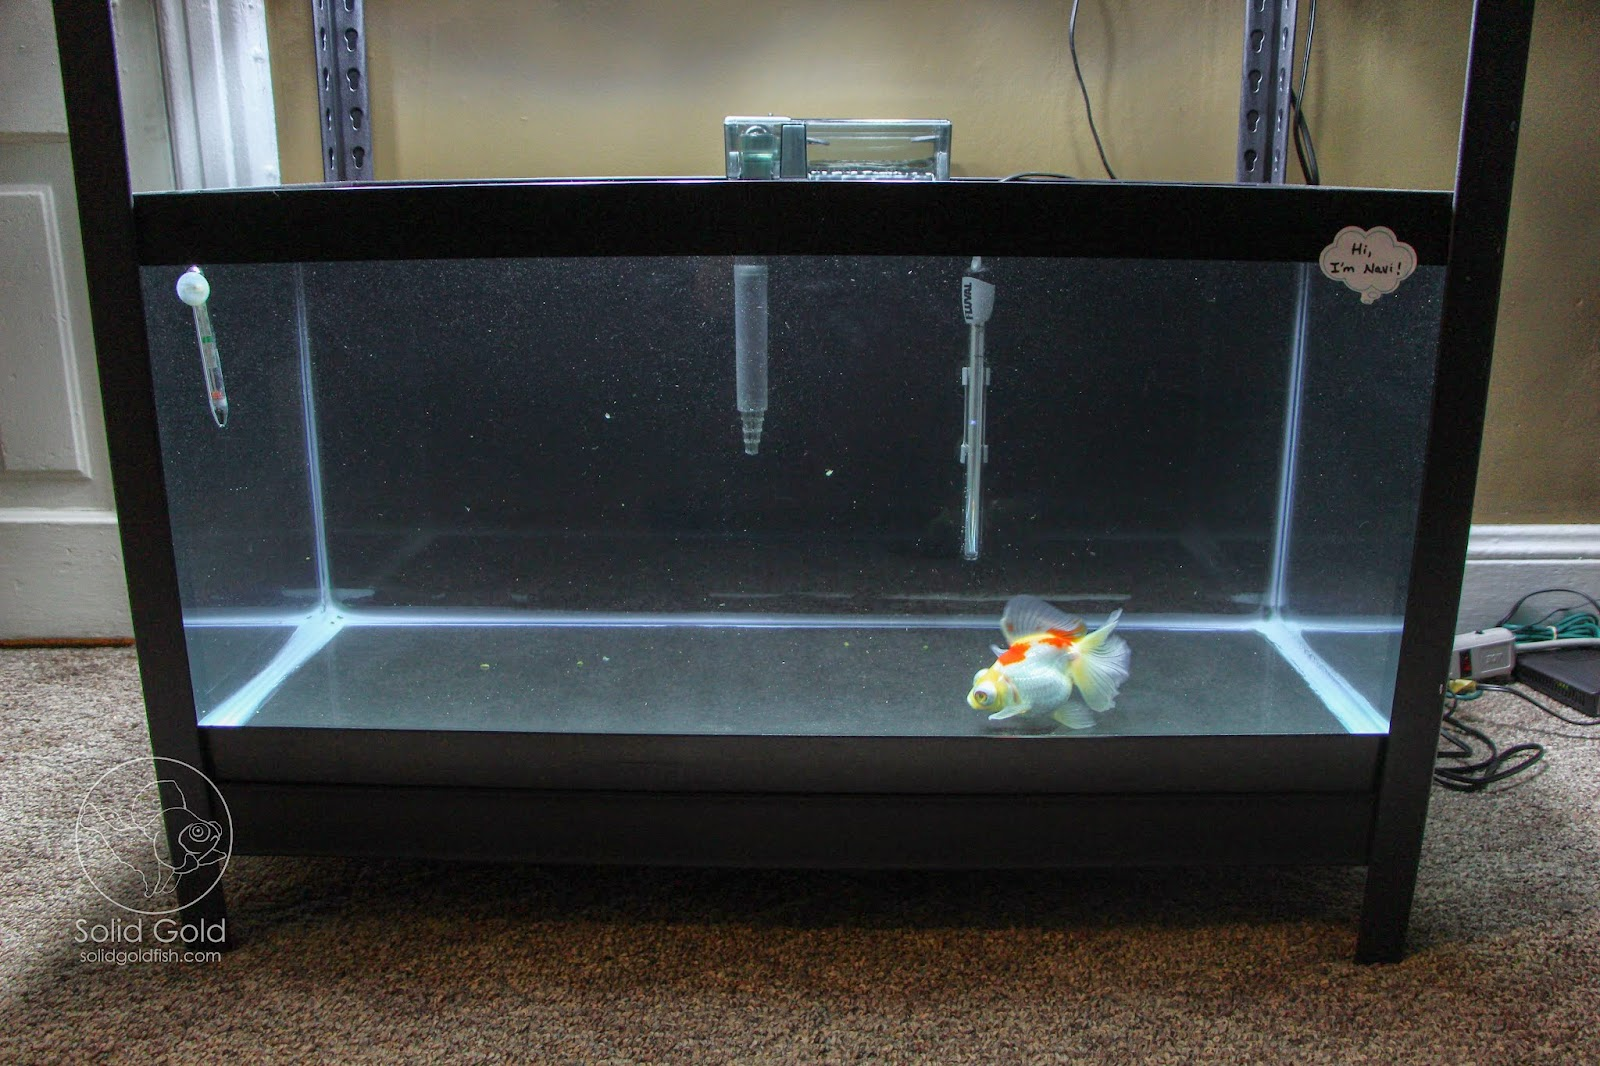 Solid Gold: The Perfect Rack for 40 Gallon Tanks